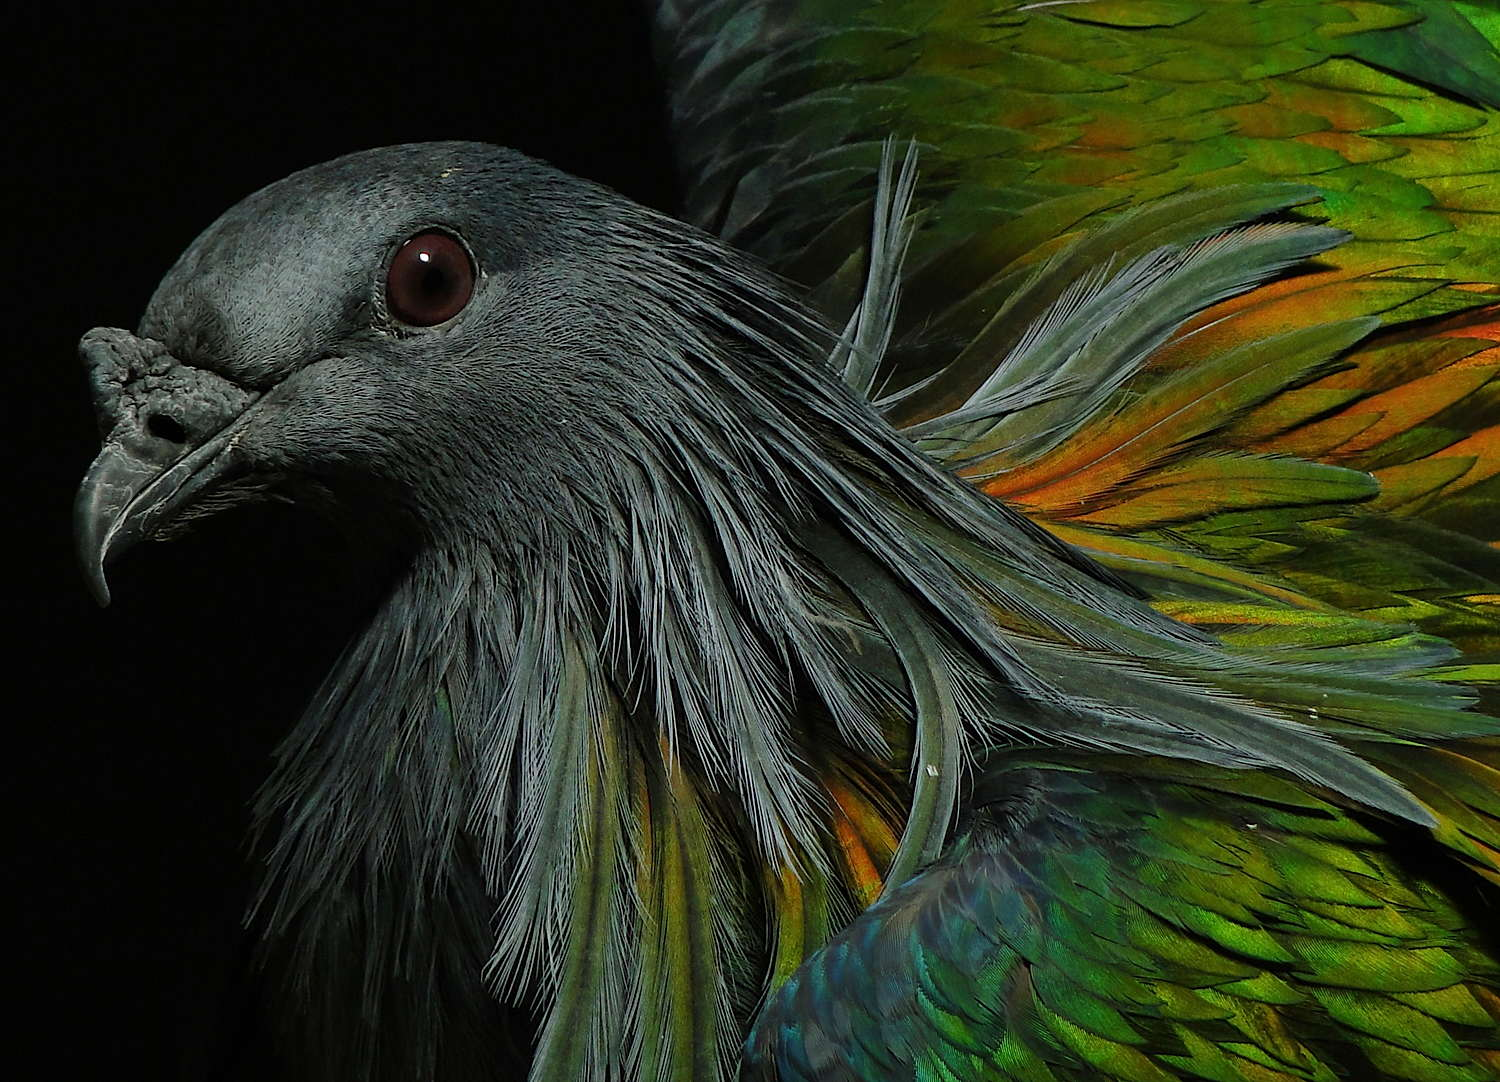 nicobar_pigeon_is_my_favorite_bird_that_resides_in_central_park_s_zoo.jpg